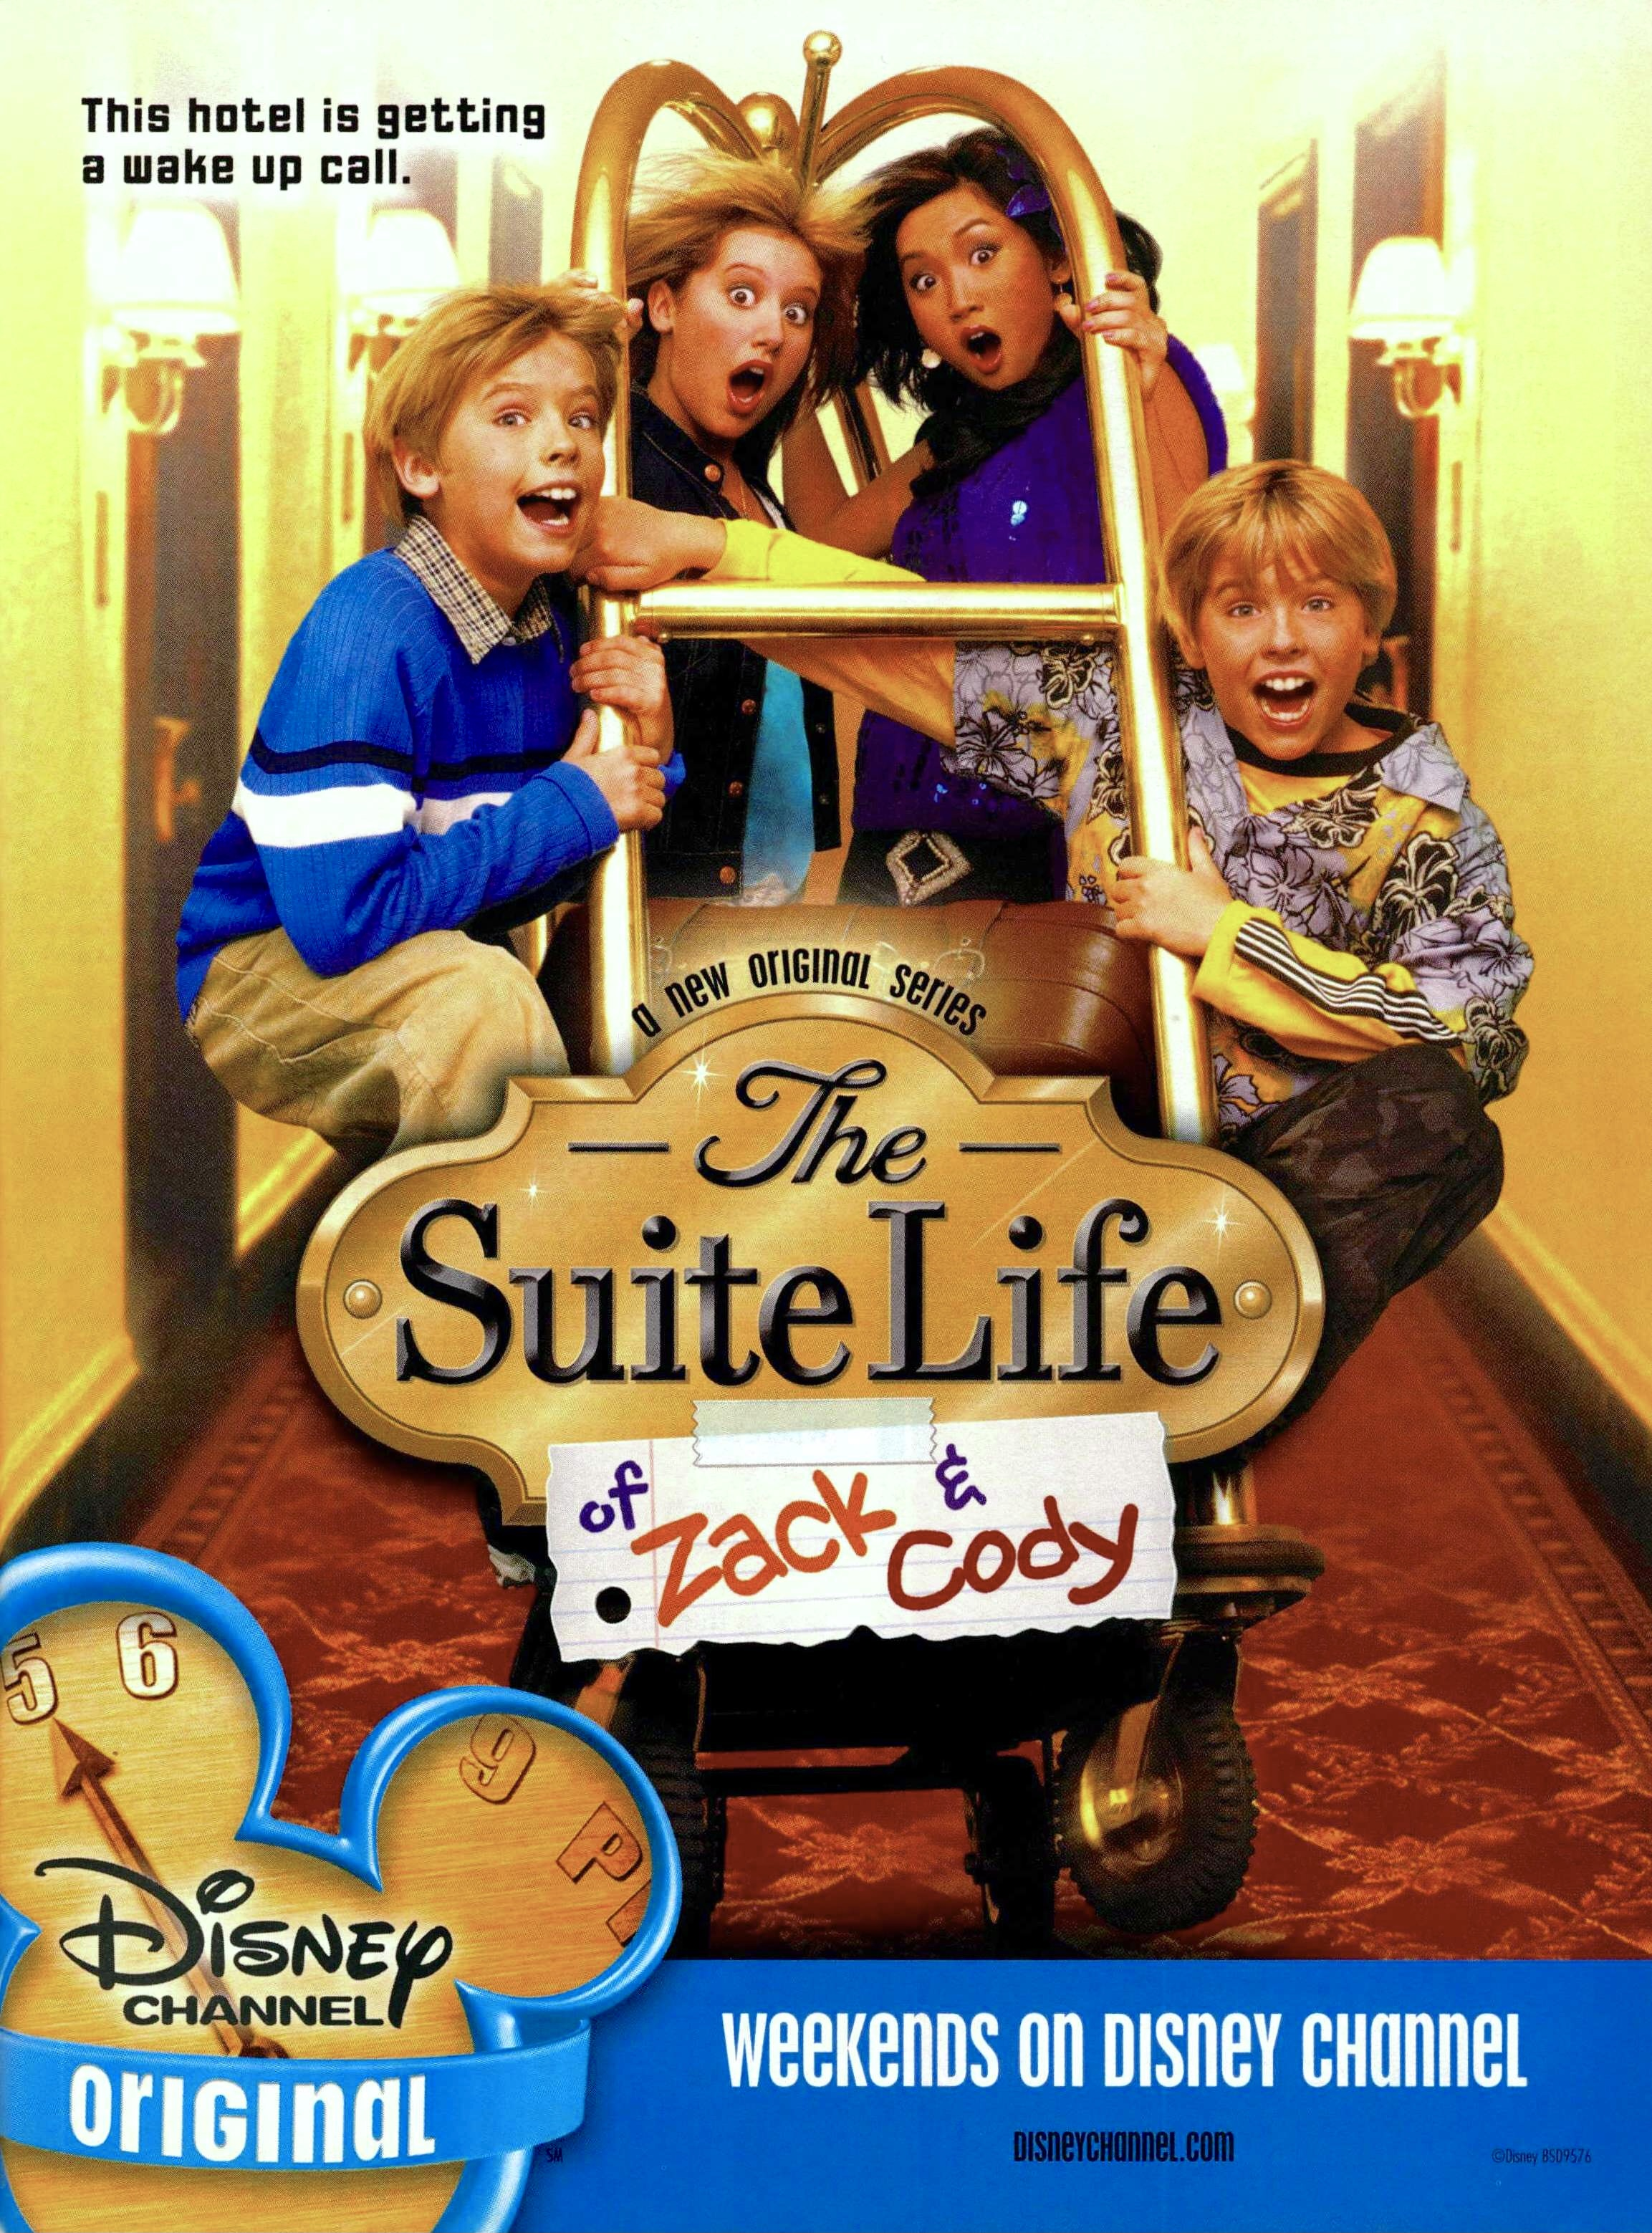 Brenda Song, Cole Sprouse, Dylan Sprouse, and Ashley Tisdale in The Suite Life of Zack & Cody (2005)